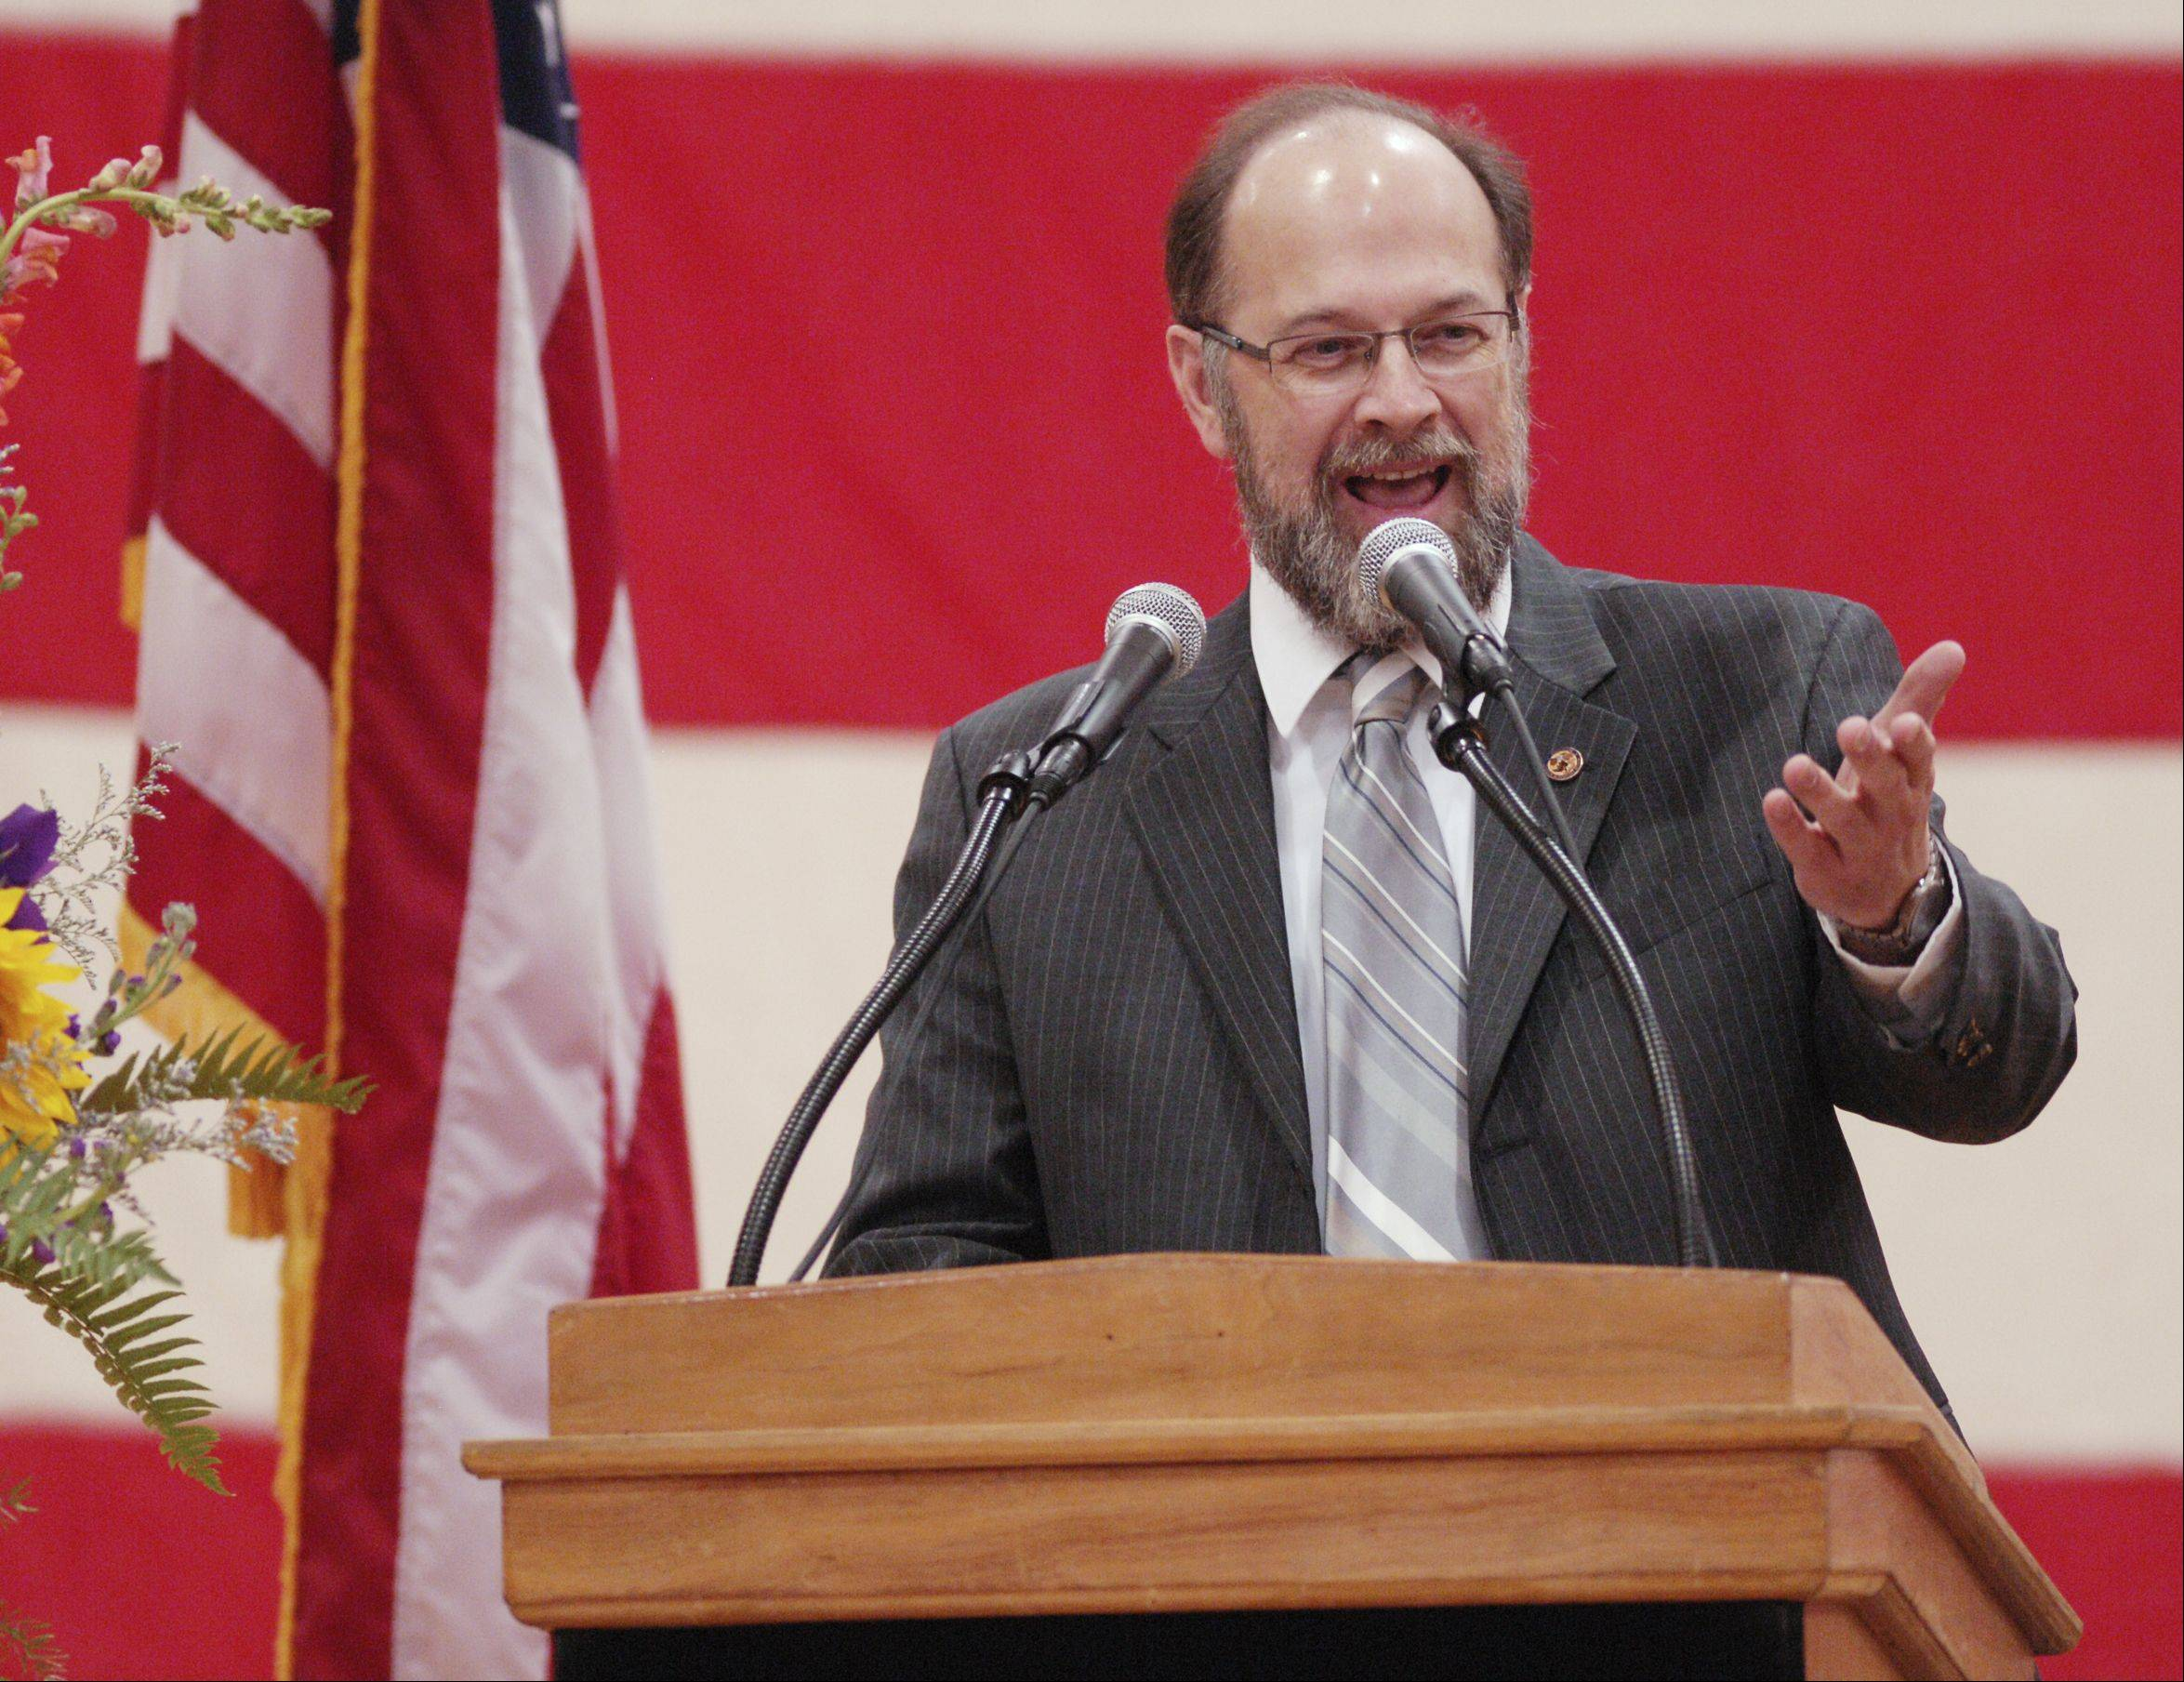 Mike Fortner, state representative and former mayor, speaks Sunday at the memorial service for West Chicago Mayor Mike Kwasman at West Chicago High School.